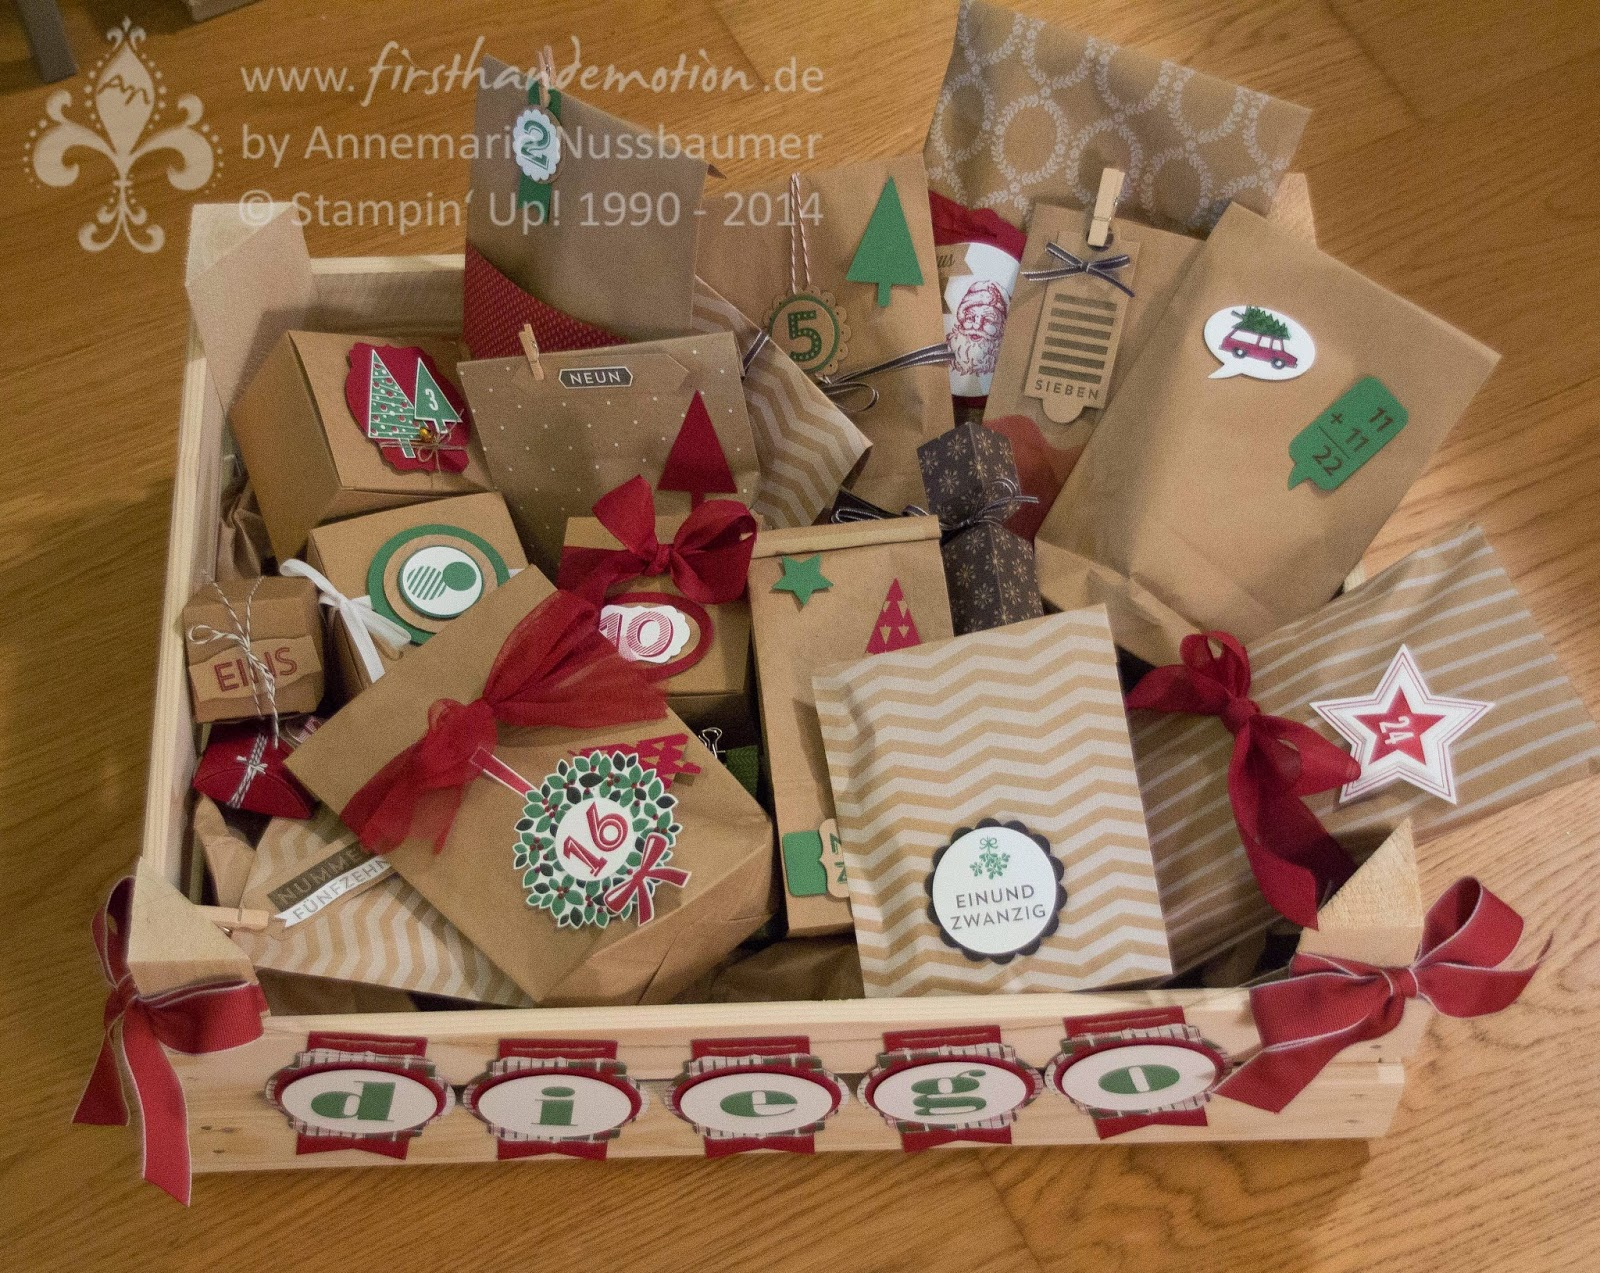 Fabelhaft First Hand Emotion: Stampin' Up! Adventskalender und Angebote der  RD07